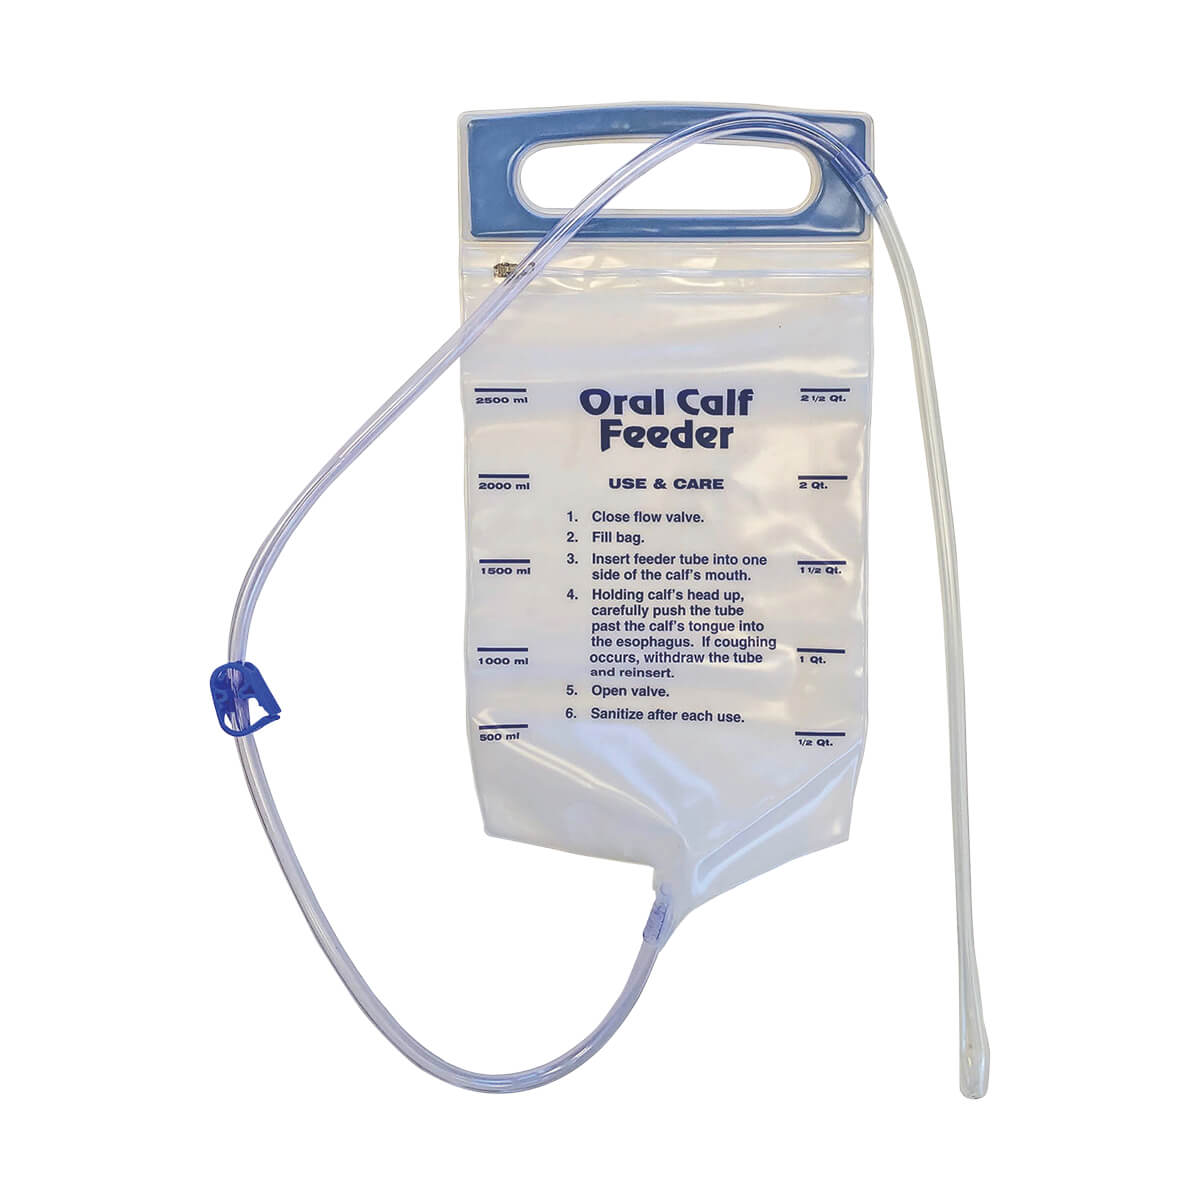 Oral Calf Feeder